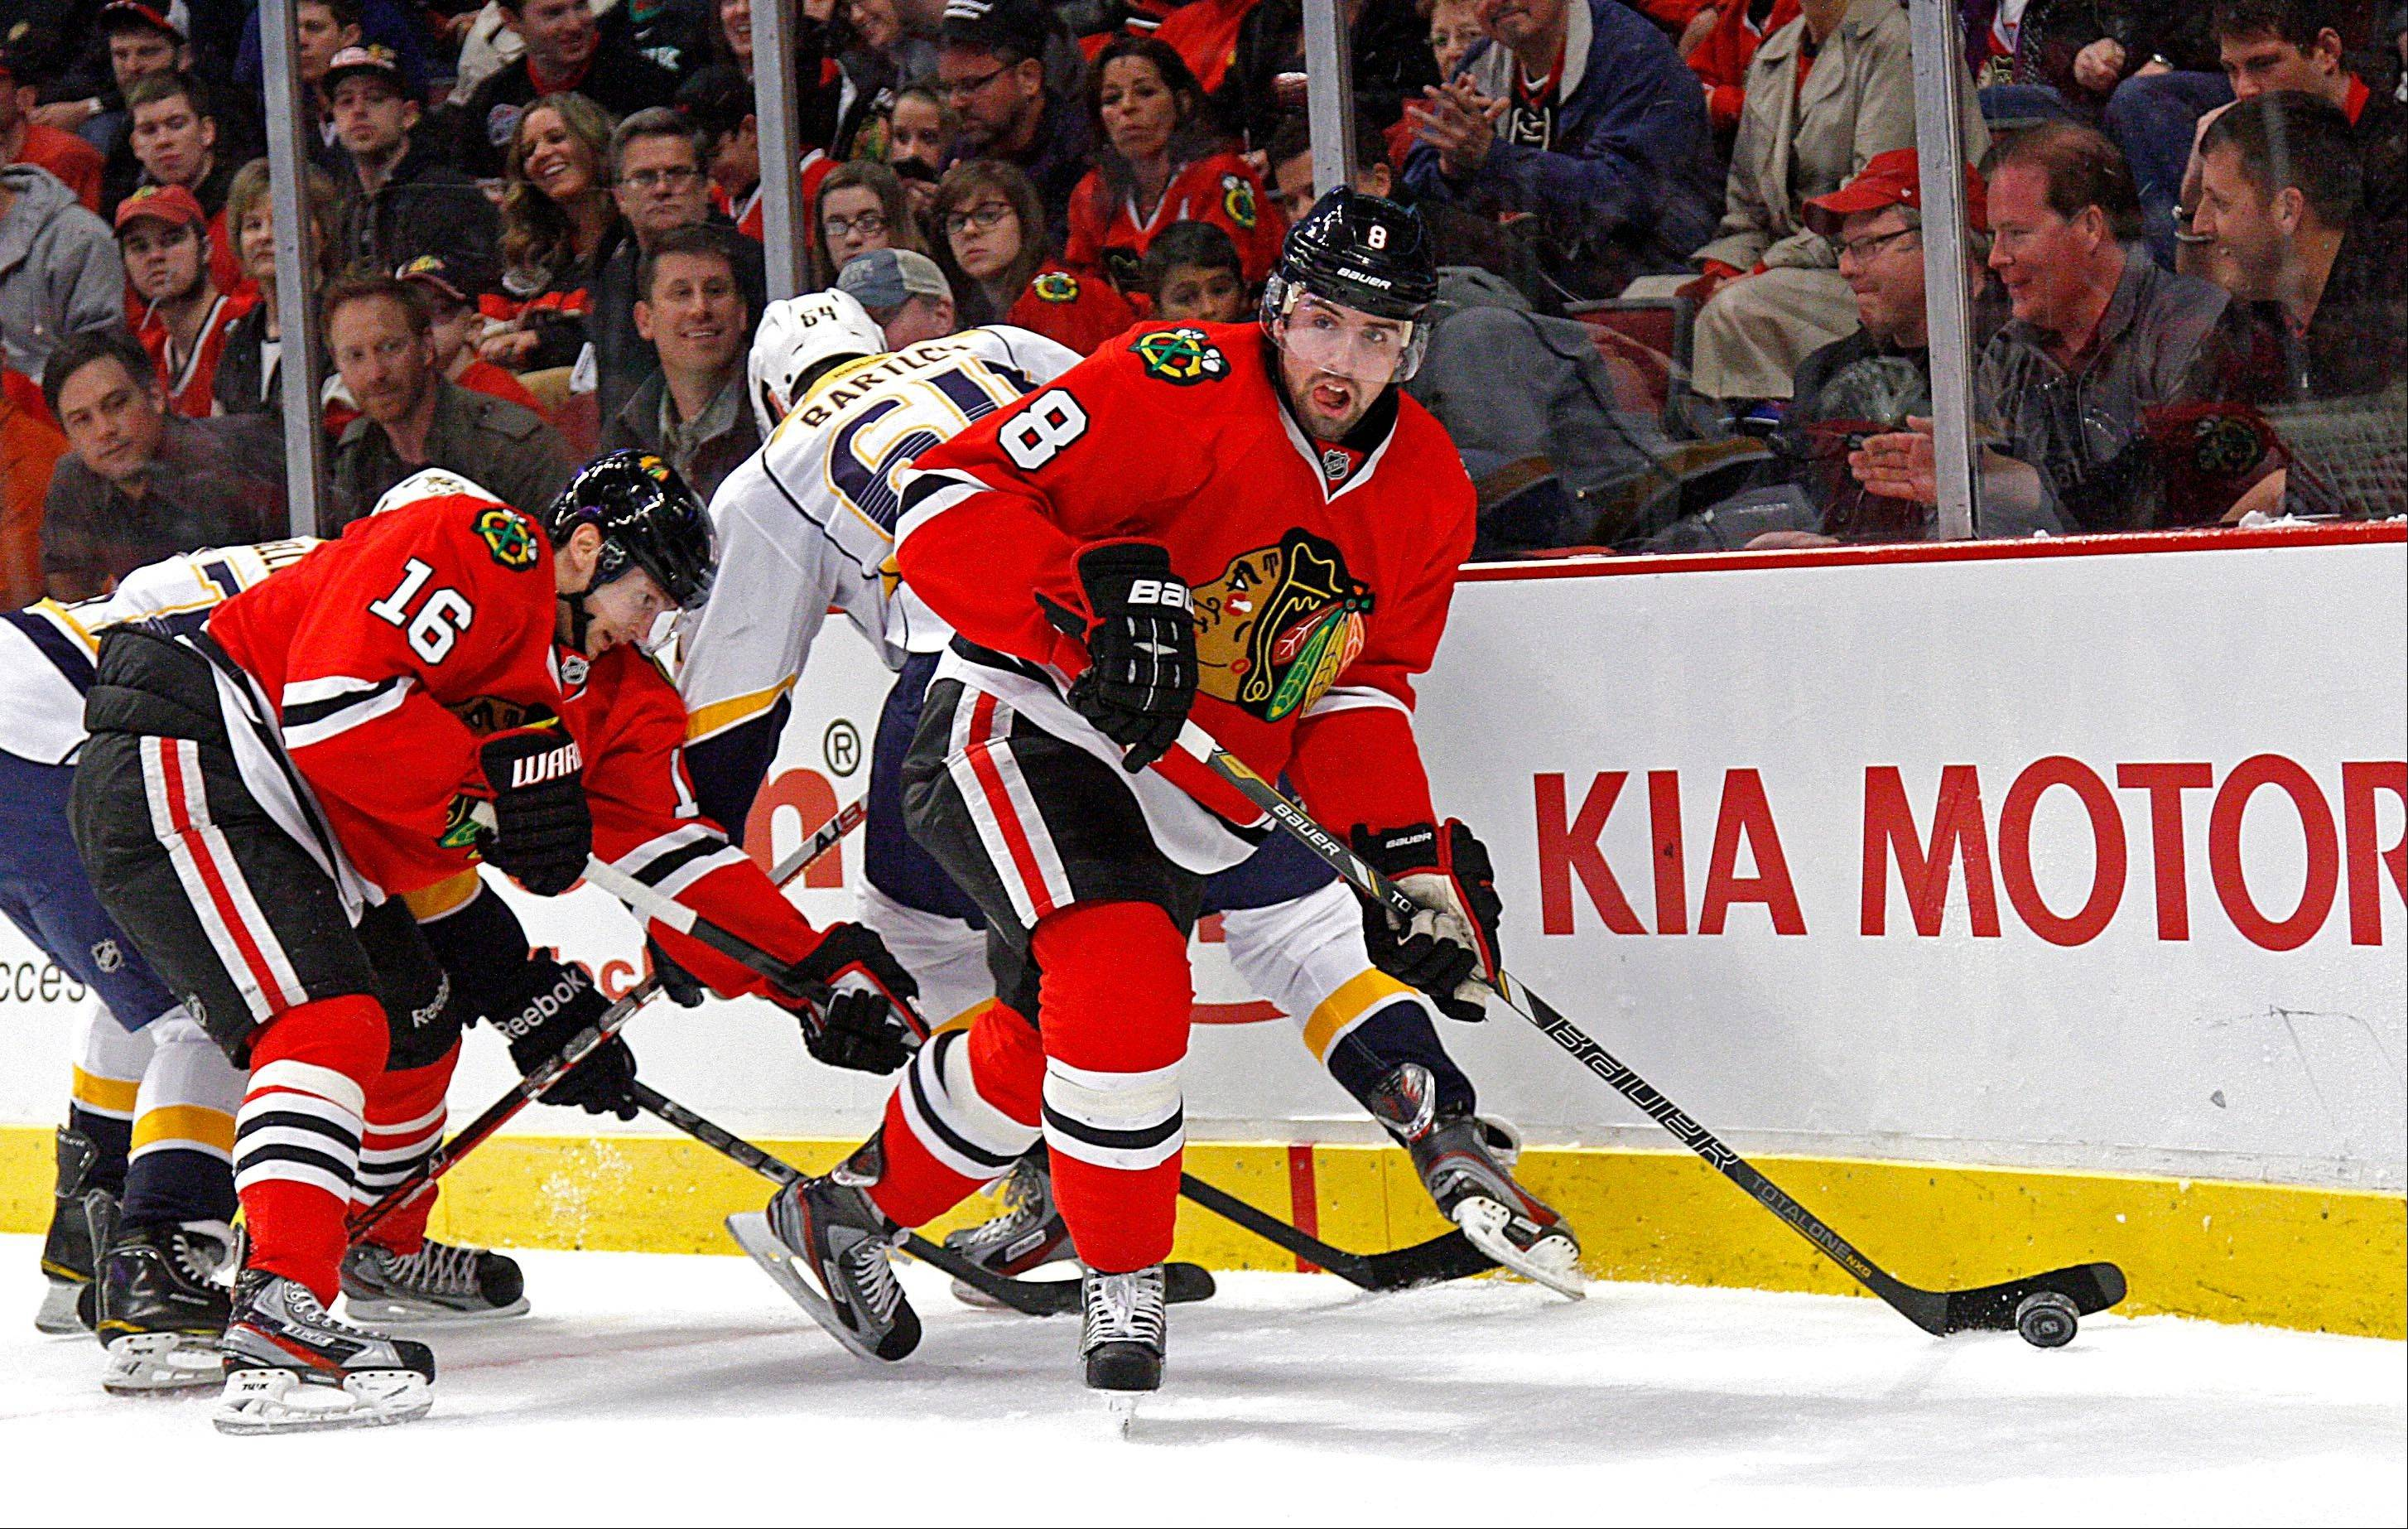 Blackhawks coach Joel Quenneville liked what he saw Sunday from defenseman Nick Leddy, here carrying the puck away from a host of players in the win.